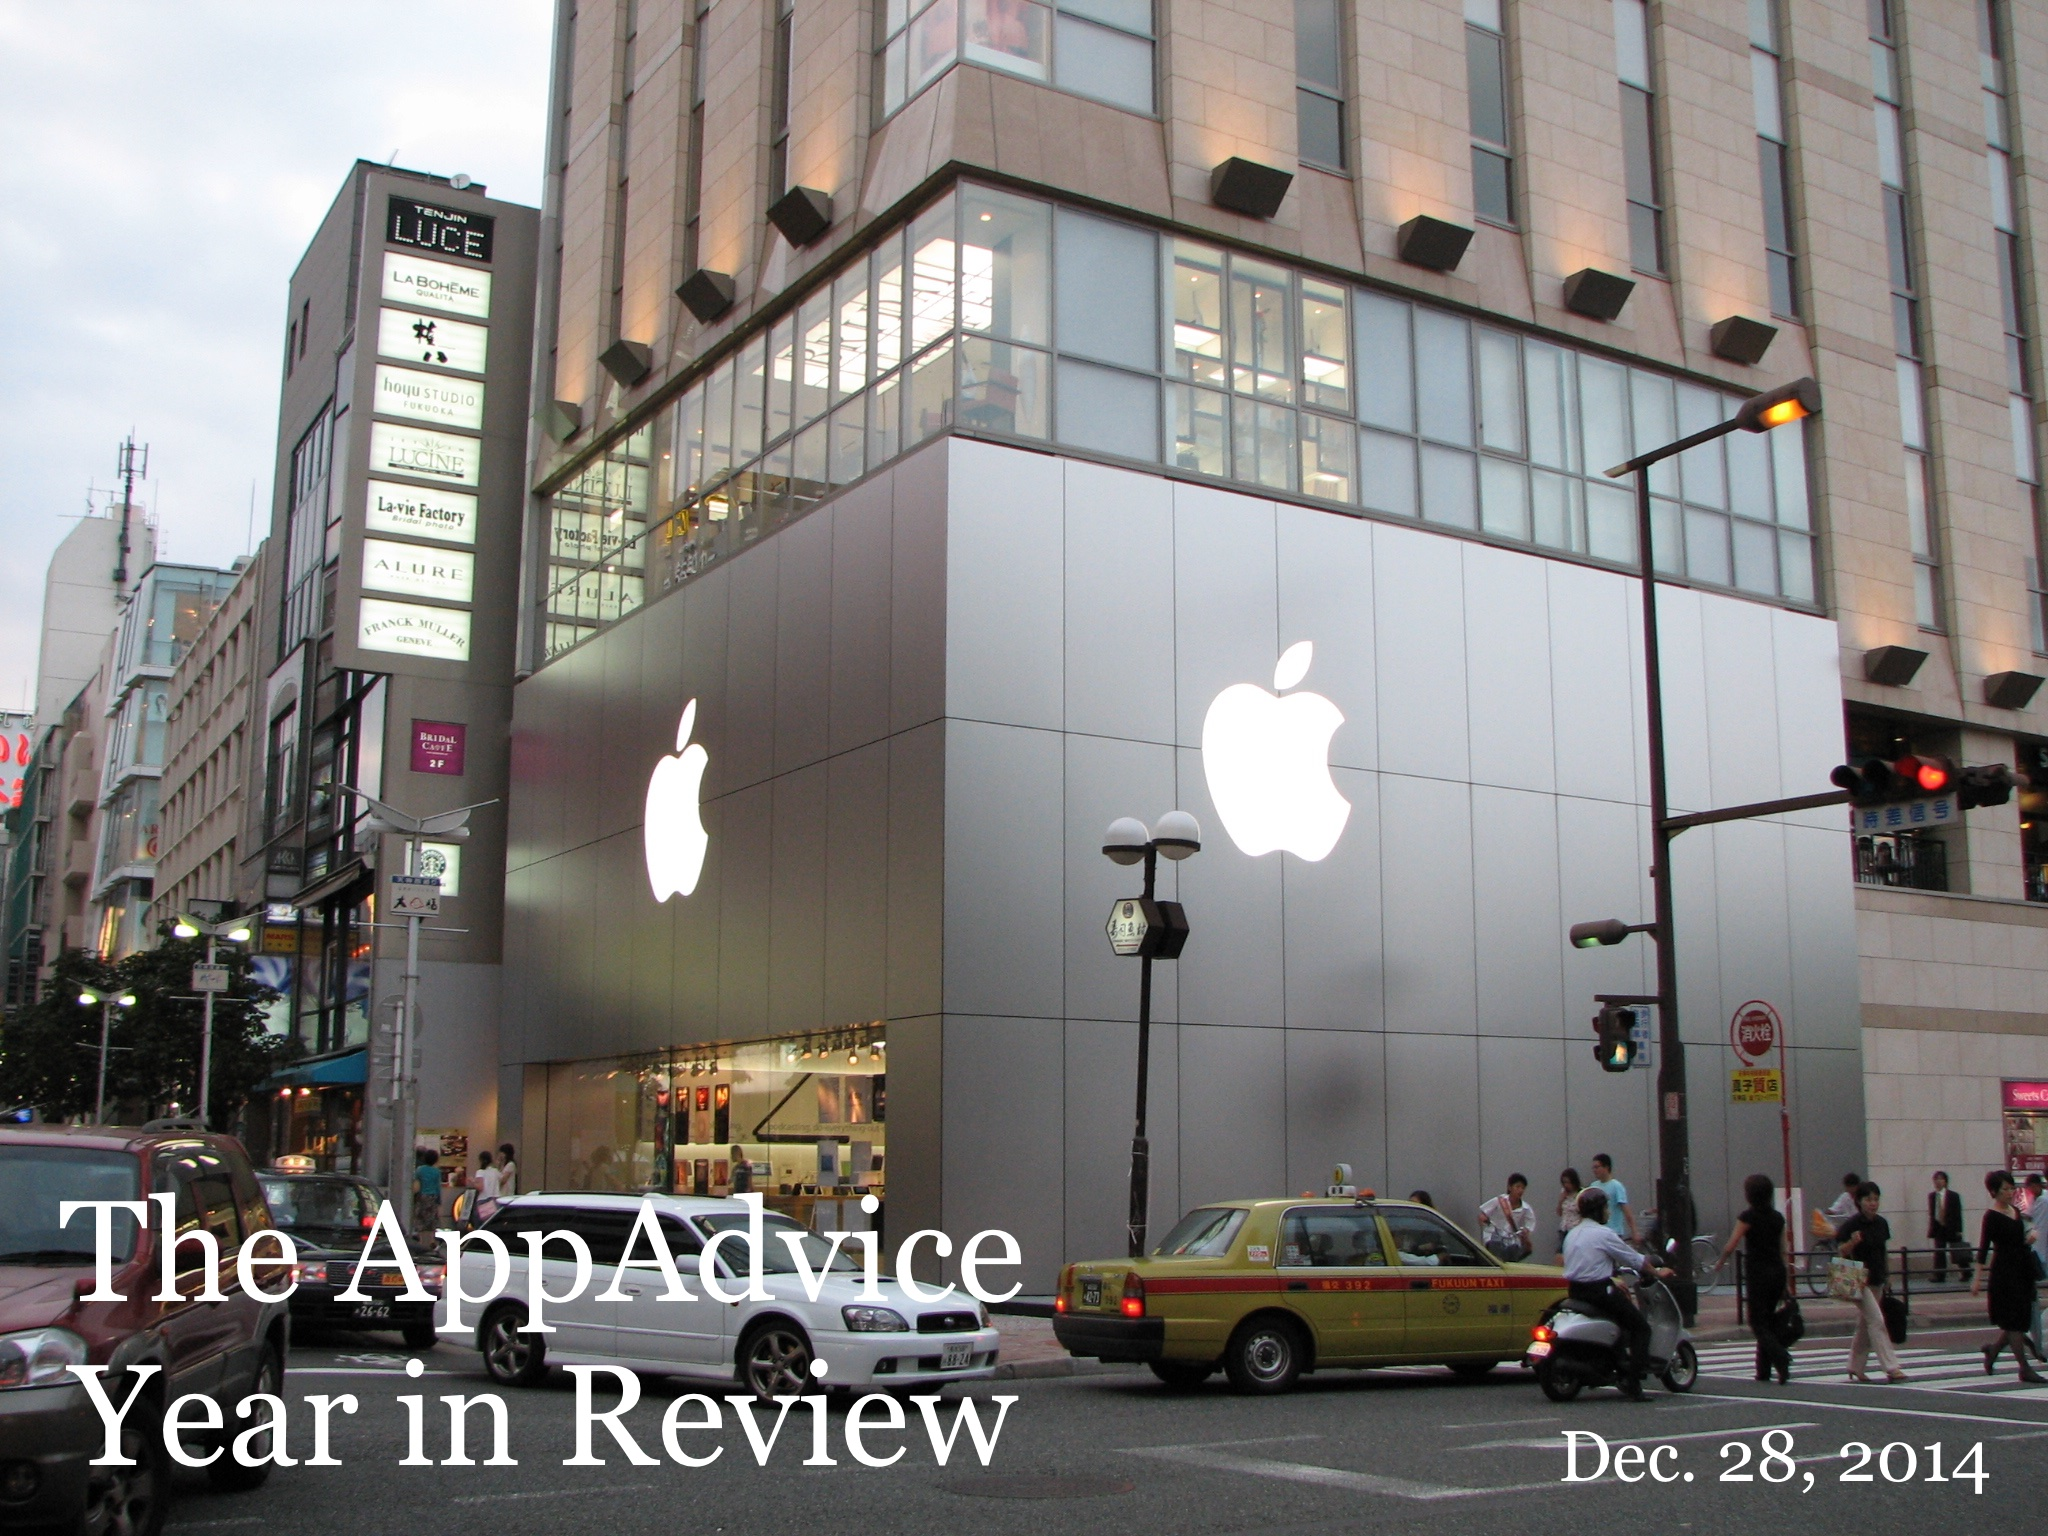 The top 10 Apple stories of 2014 include the Apple Watch, 'Bendgate,' Beats and more